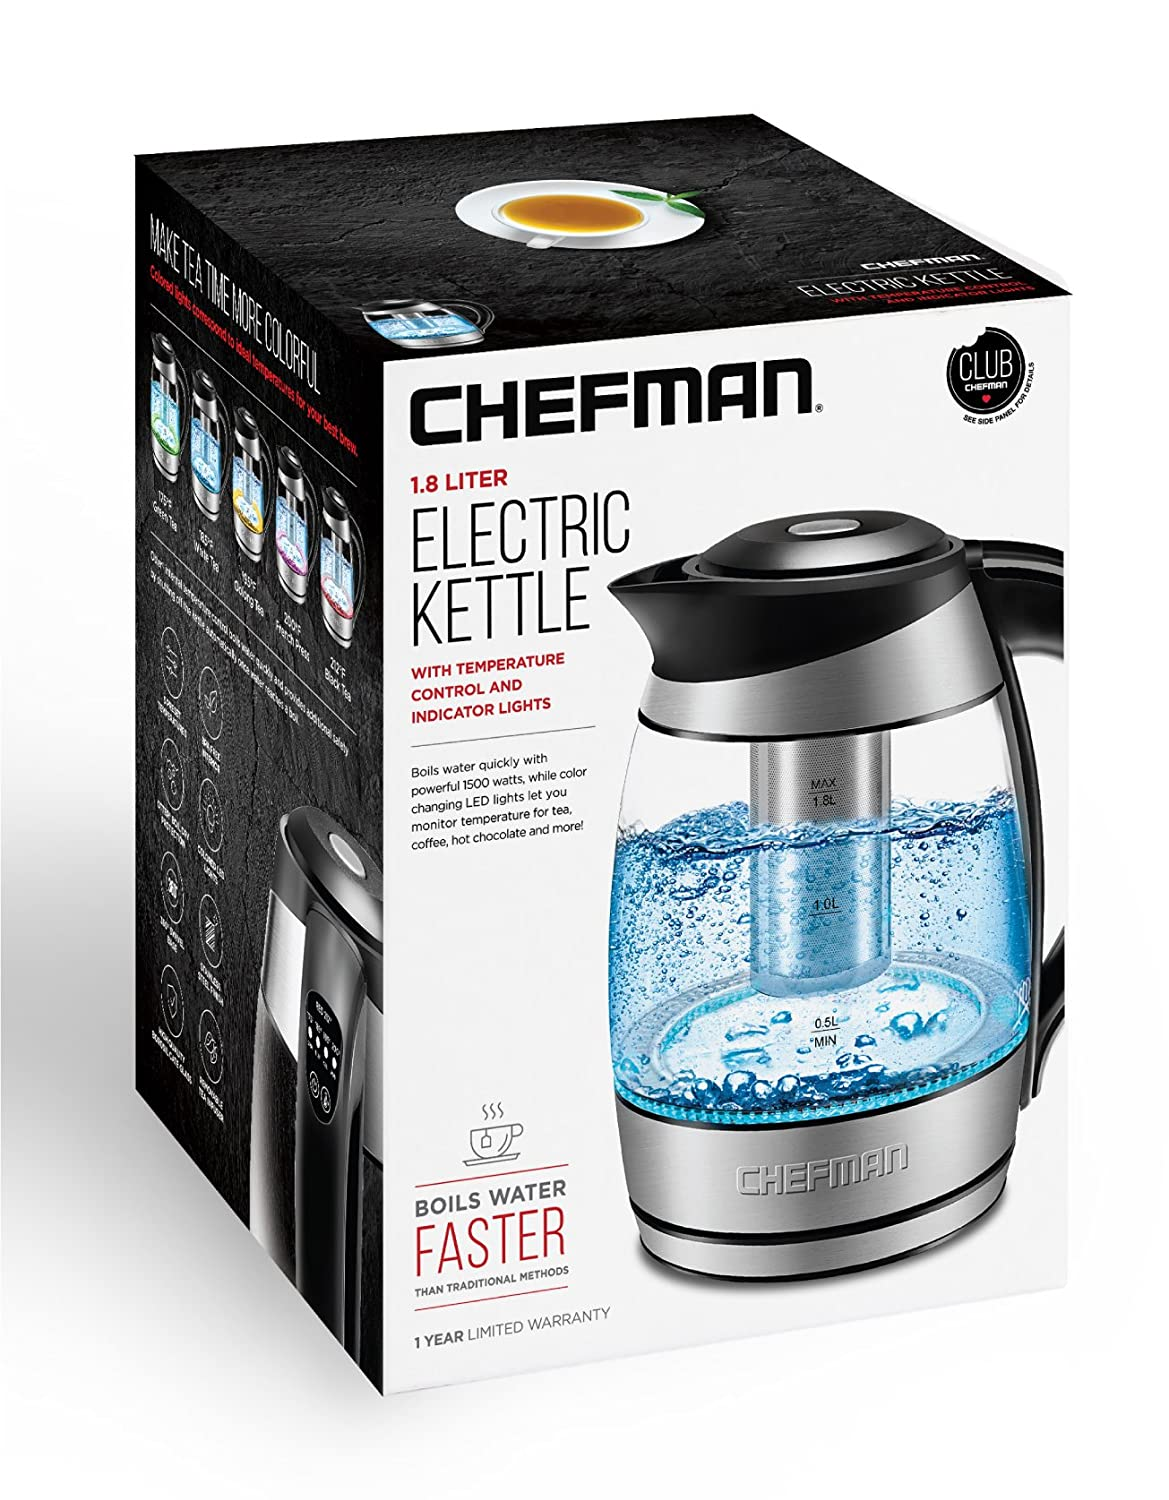 Chefman 1.8 L Electric Kettle, Stainless Steel, 5 Coloured Presets, 360° Swivel Base, BPA Free, (RJ11-17-CTI-CA)